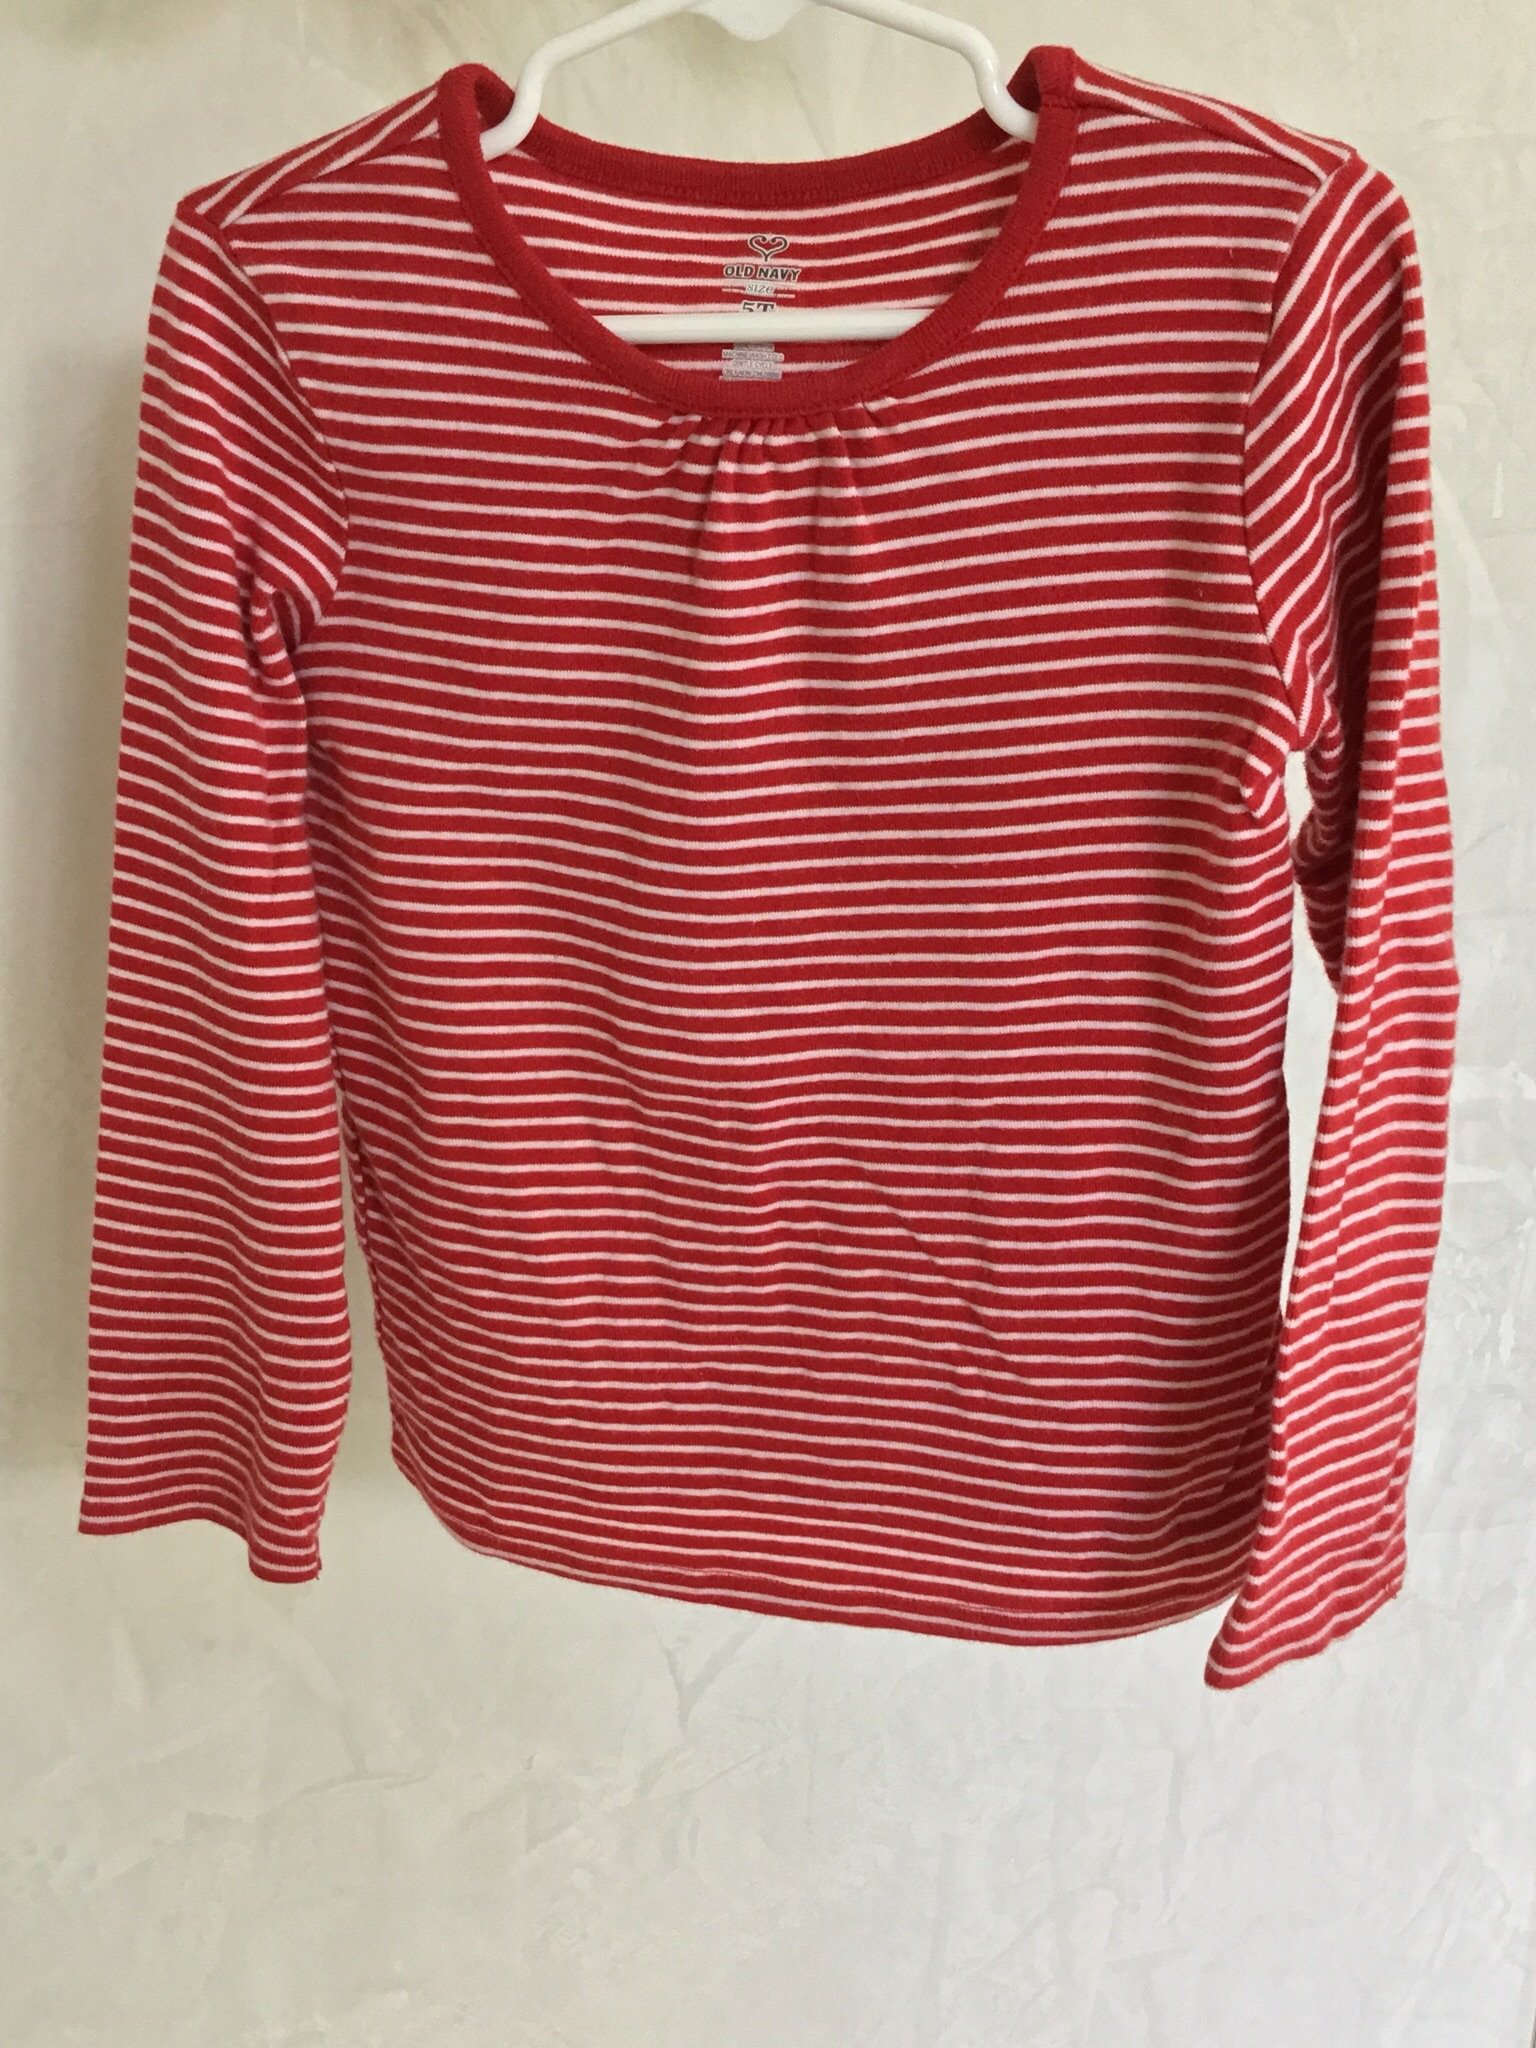 Old Navy Red and White Striped Long Sleeve Tshirt Size 5T